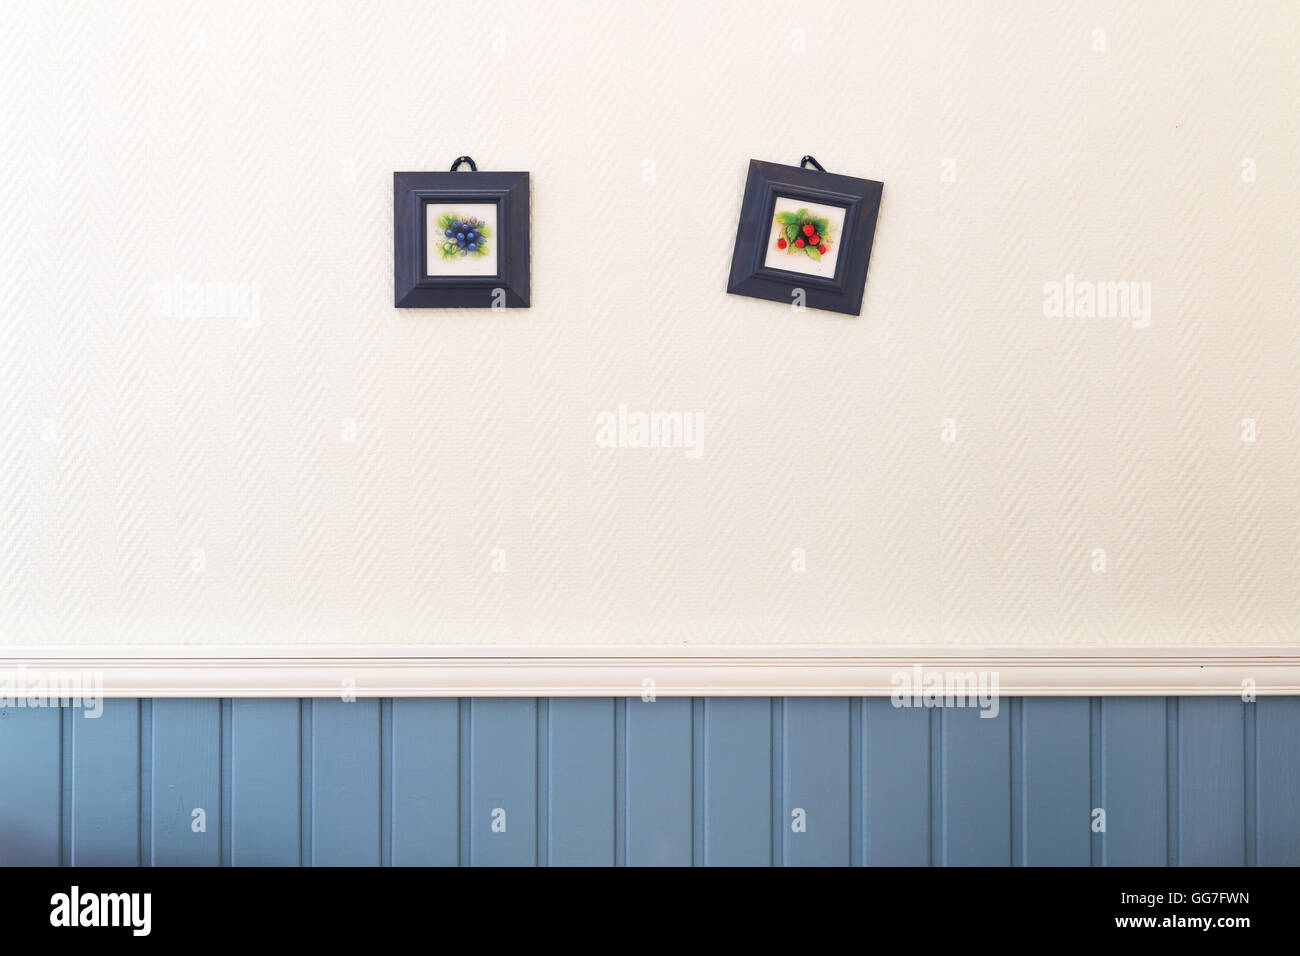 Two small square pictures of blueberries and strawberries in frames hanging on the white blue wall. - Stock Image